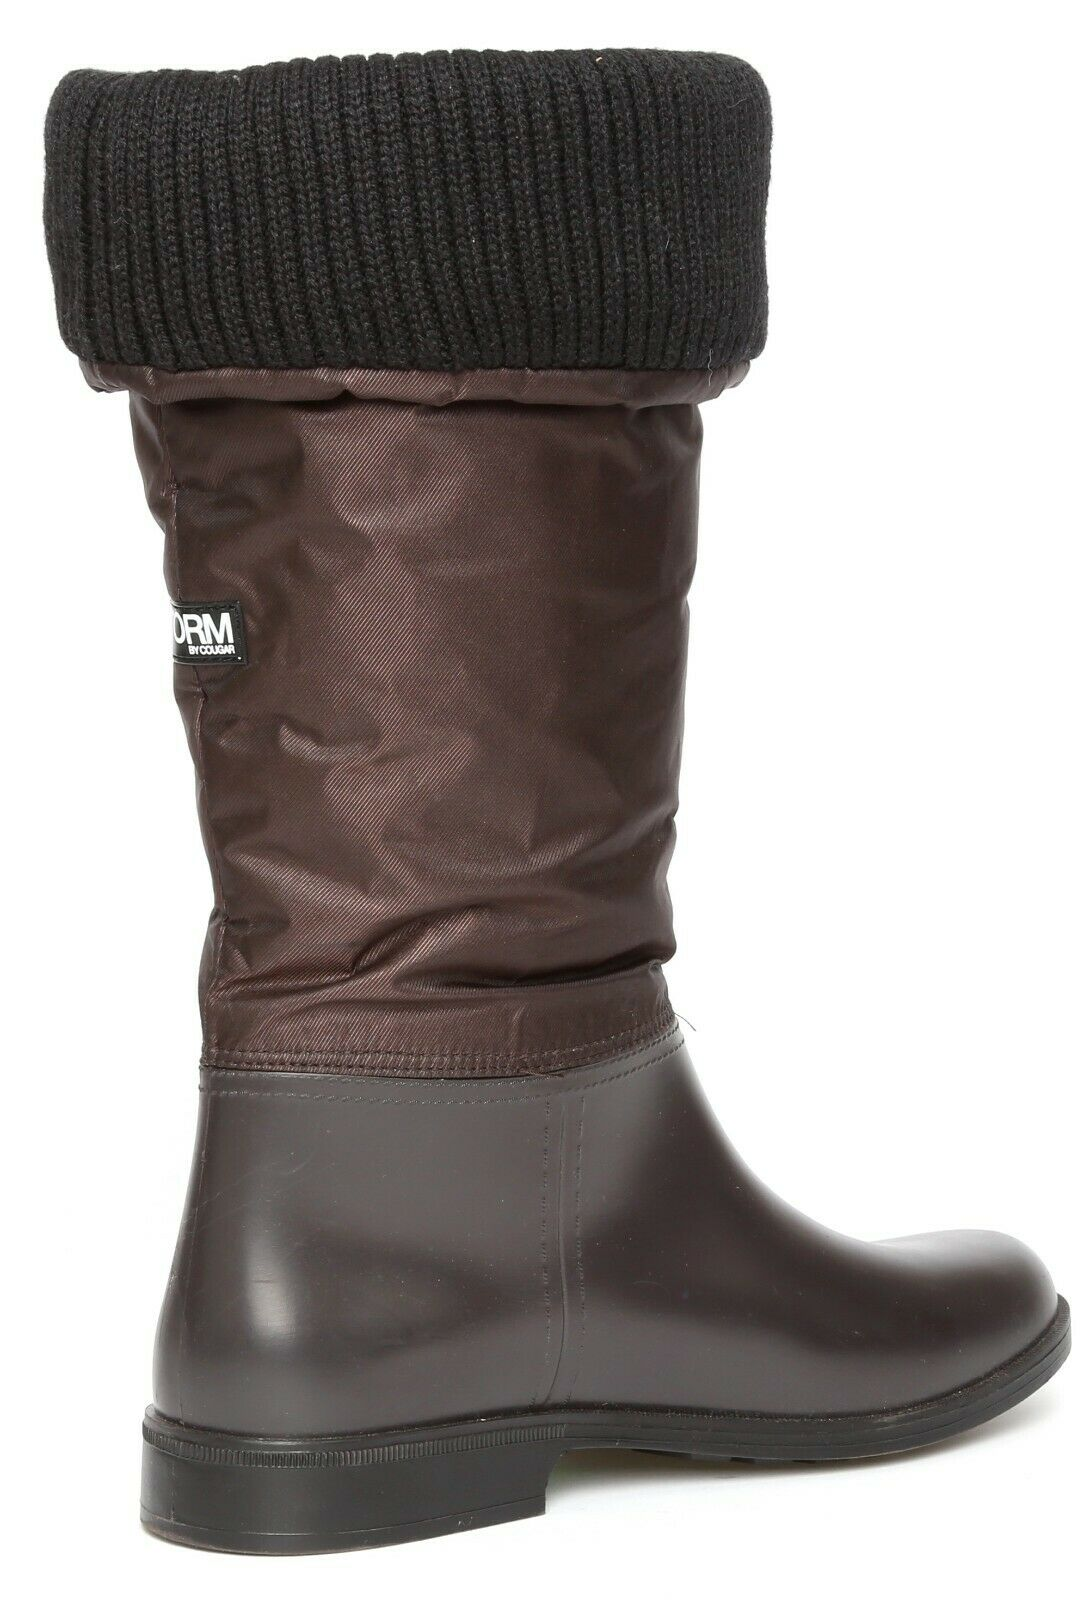 Storm By Cougar Womens Dark Brown Stowe Boots Sz Sz Sz 11 8007  e909a8